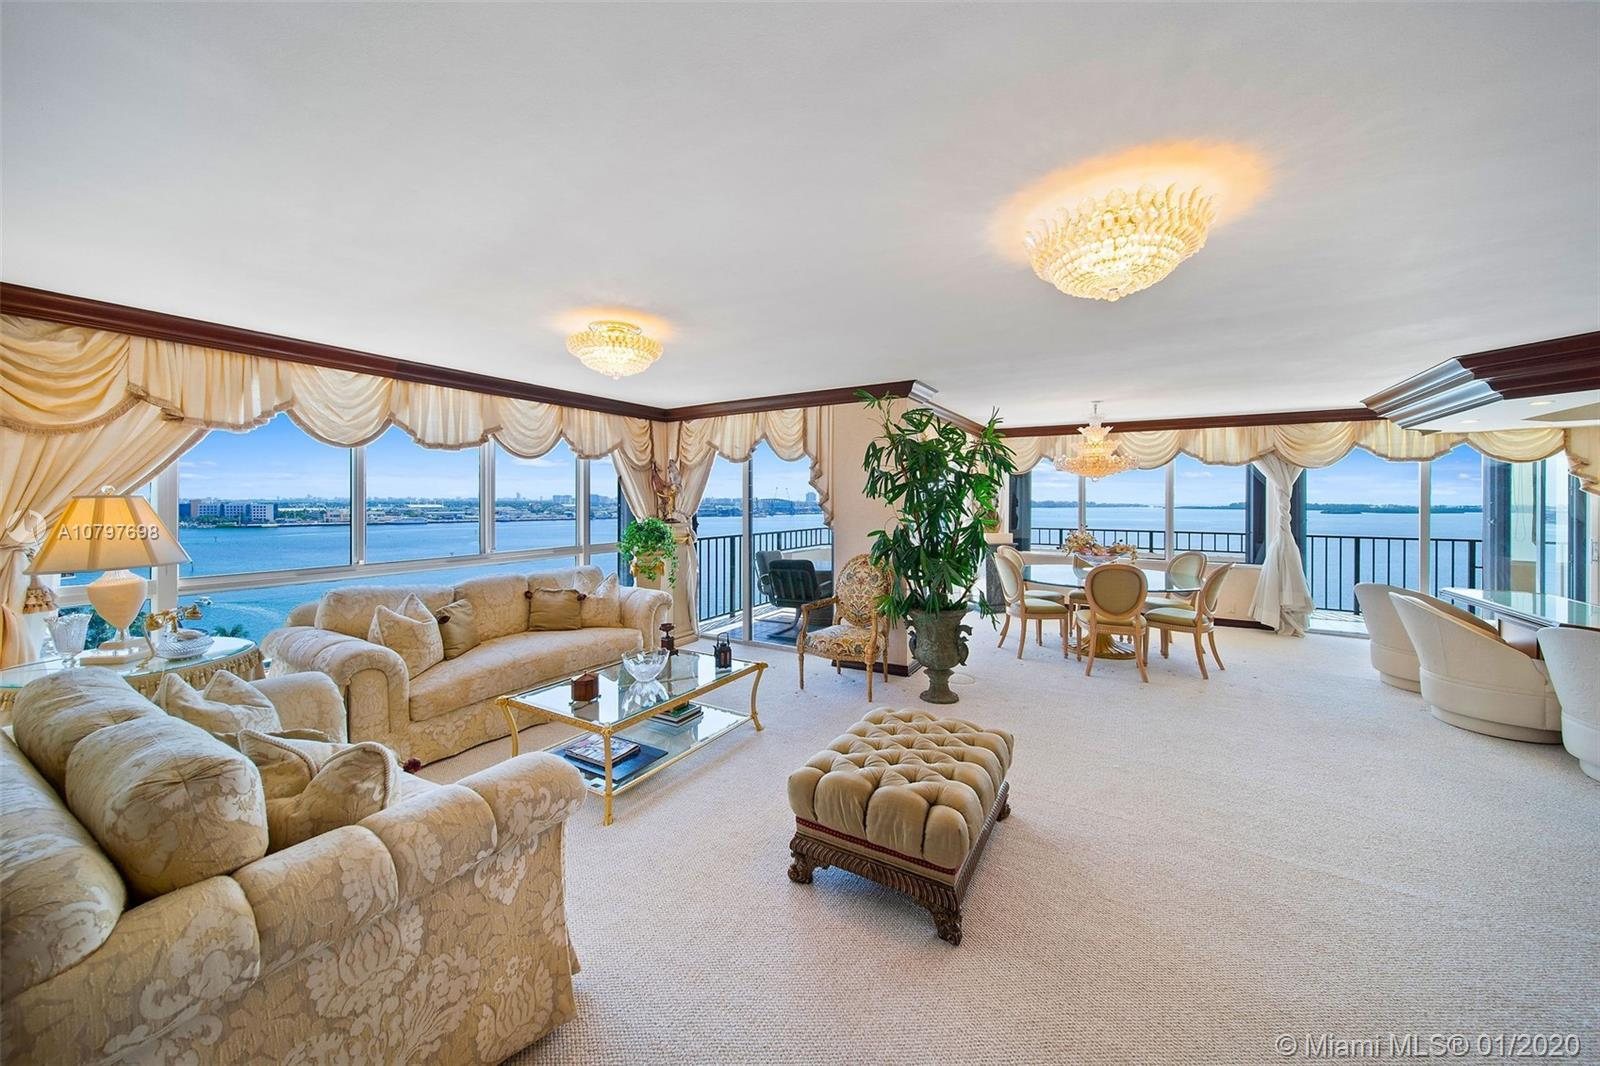 Direct waterfront views from one of the largest residences in Brickell Key. Interior has 3300 SF of